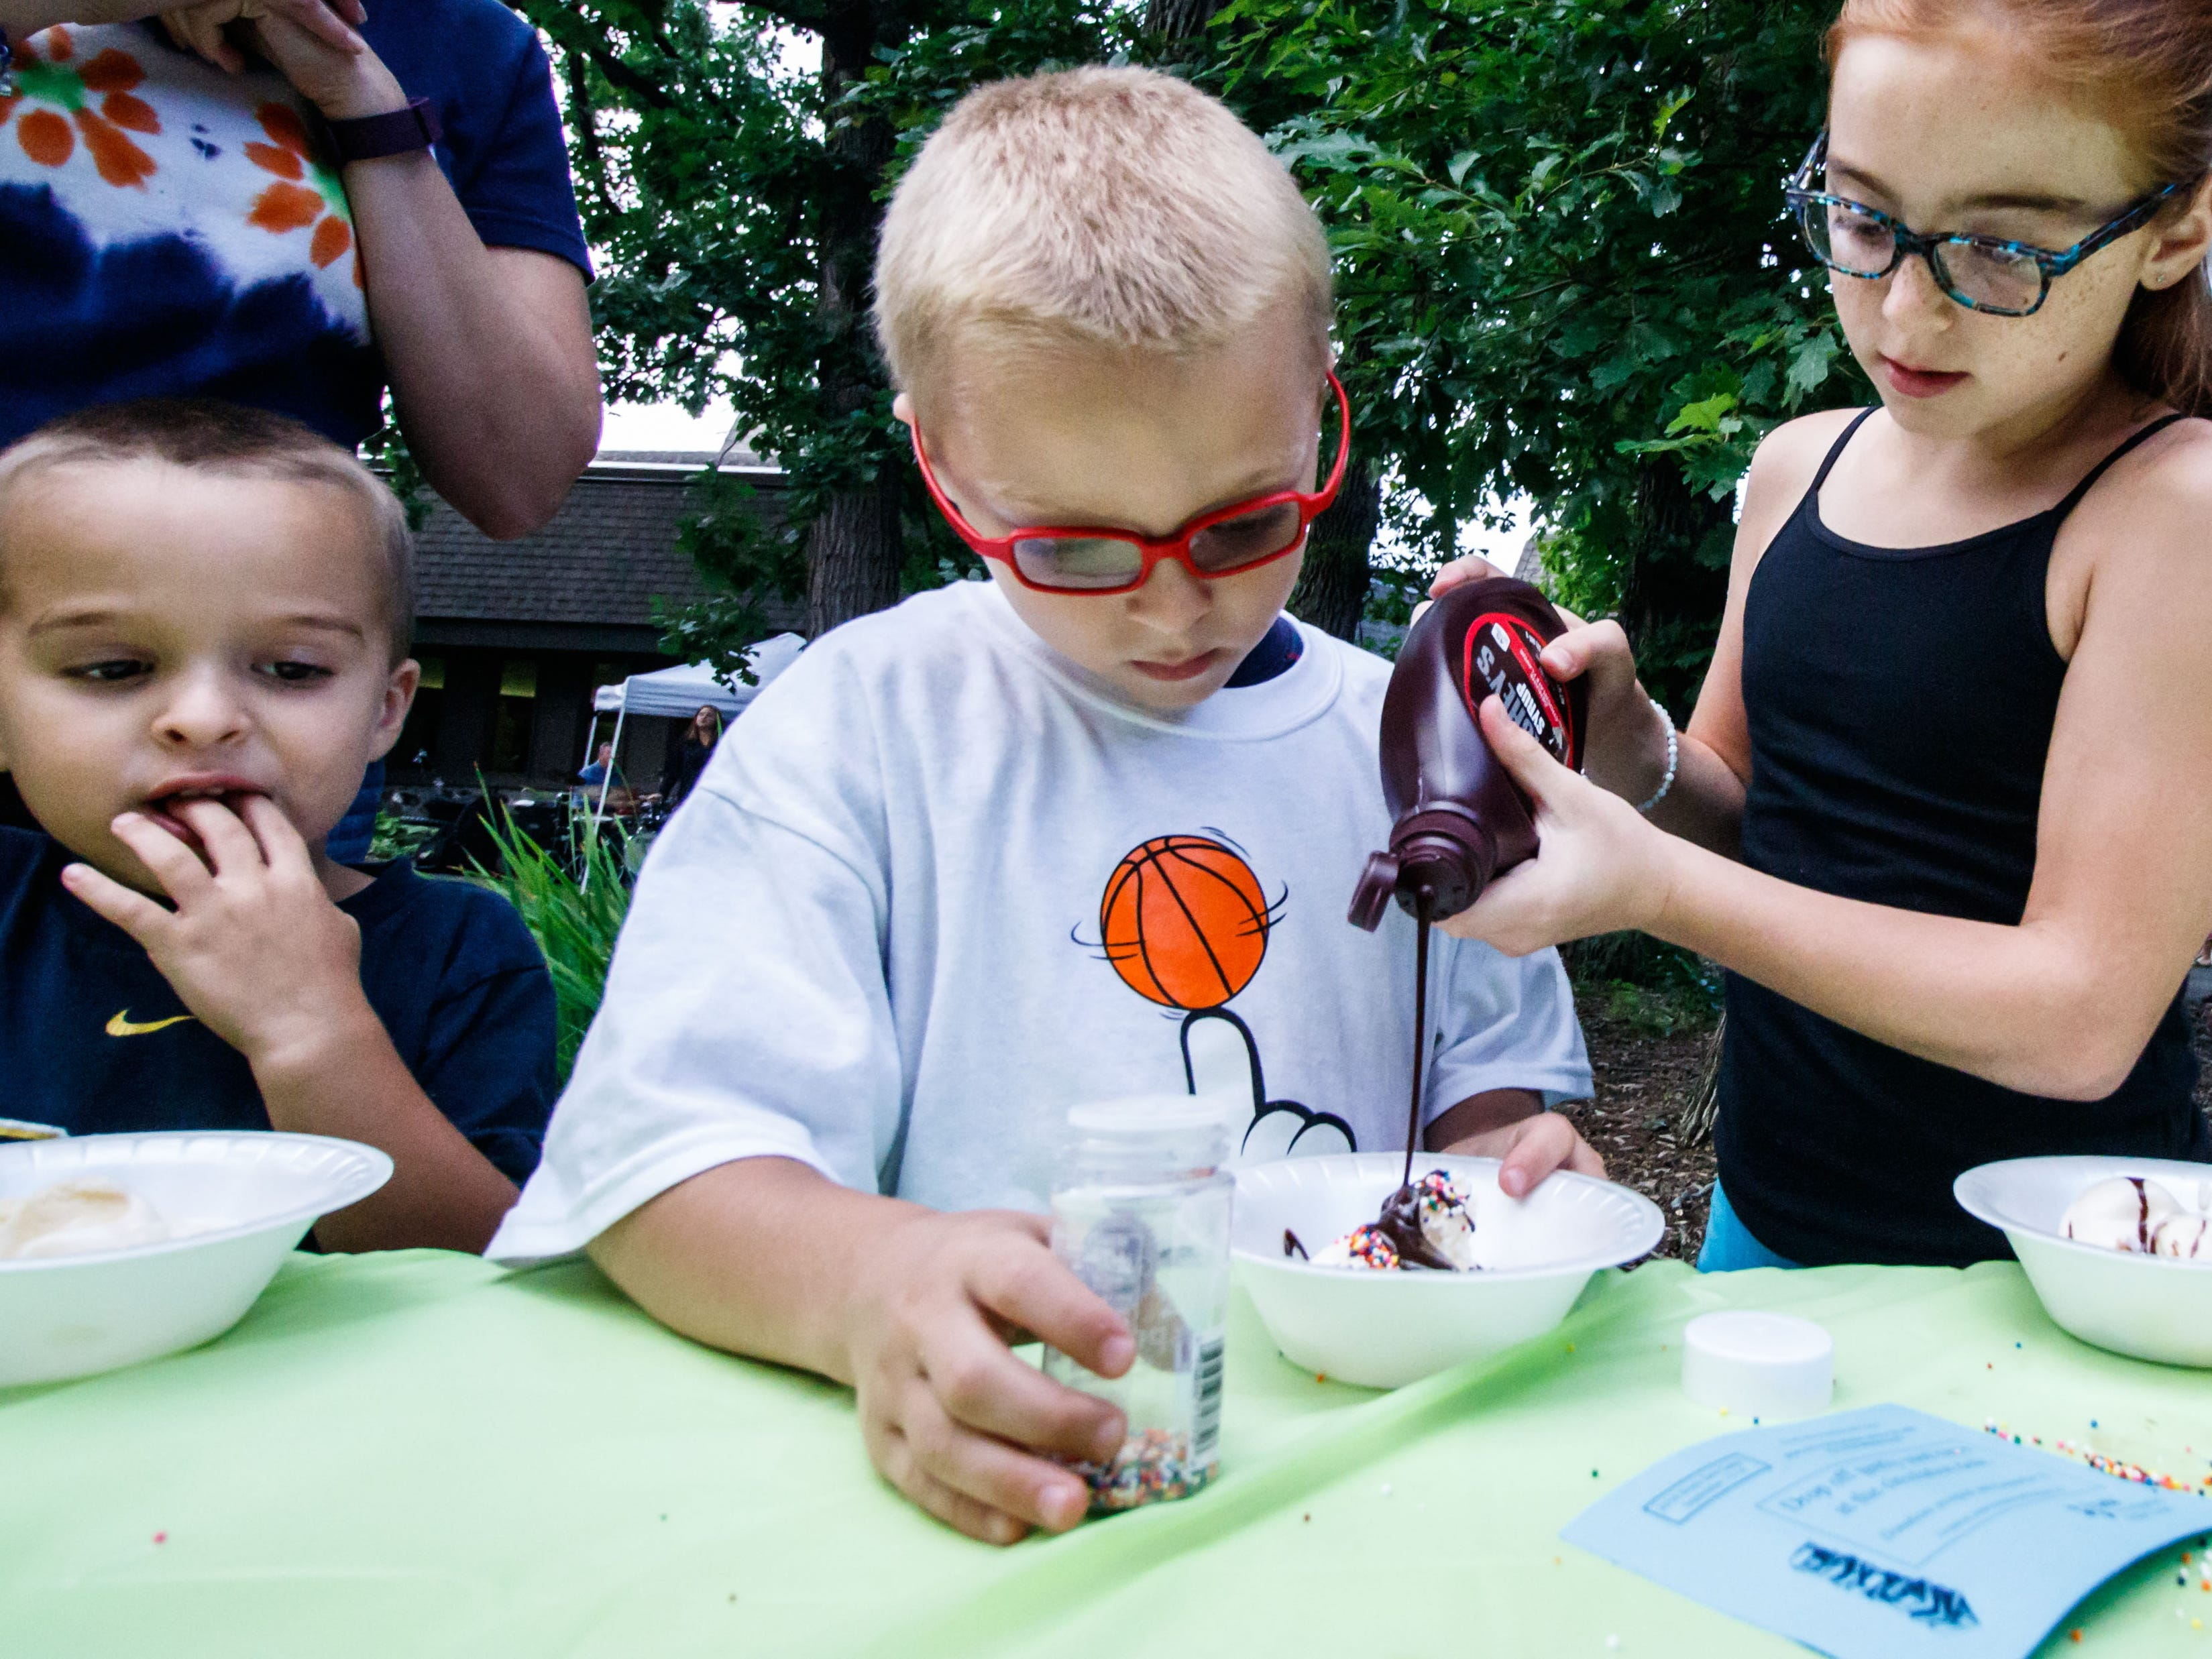 Four-year-old Anthony Stith, of Brookfield, looks on as his brother Thomas, 7, and sister Mary, 10, build the perfect sundae at the Brookfield Public Library's Ice Cream Social on Tuesday, August 7, 2018. The free event, sponsored by Friends of the Library, celebrates the end of Summer Reading with ice cream and music.